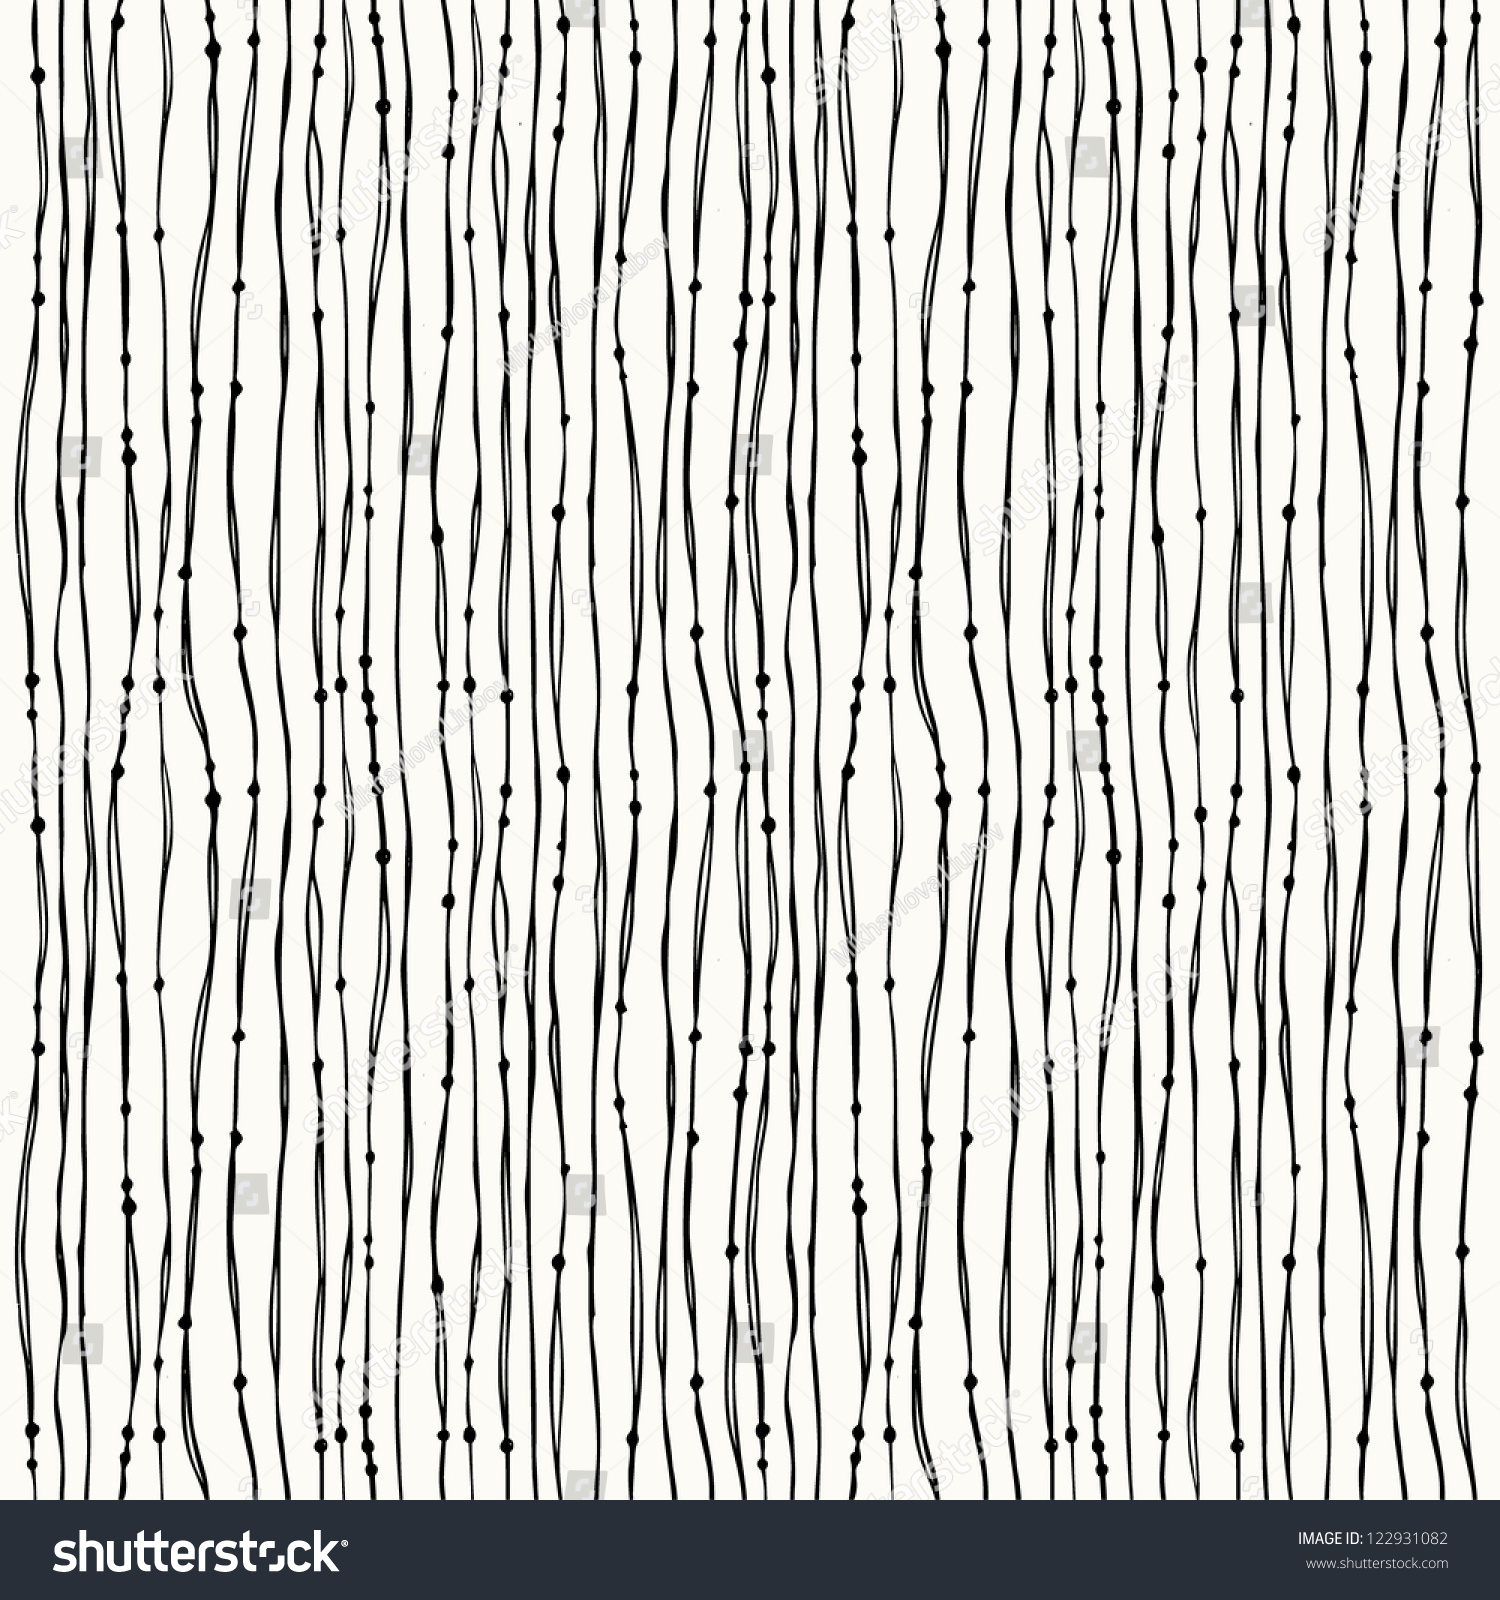 Line Texture Seamless : Seamless black white abstract hand drawn stock vector